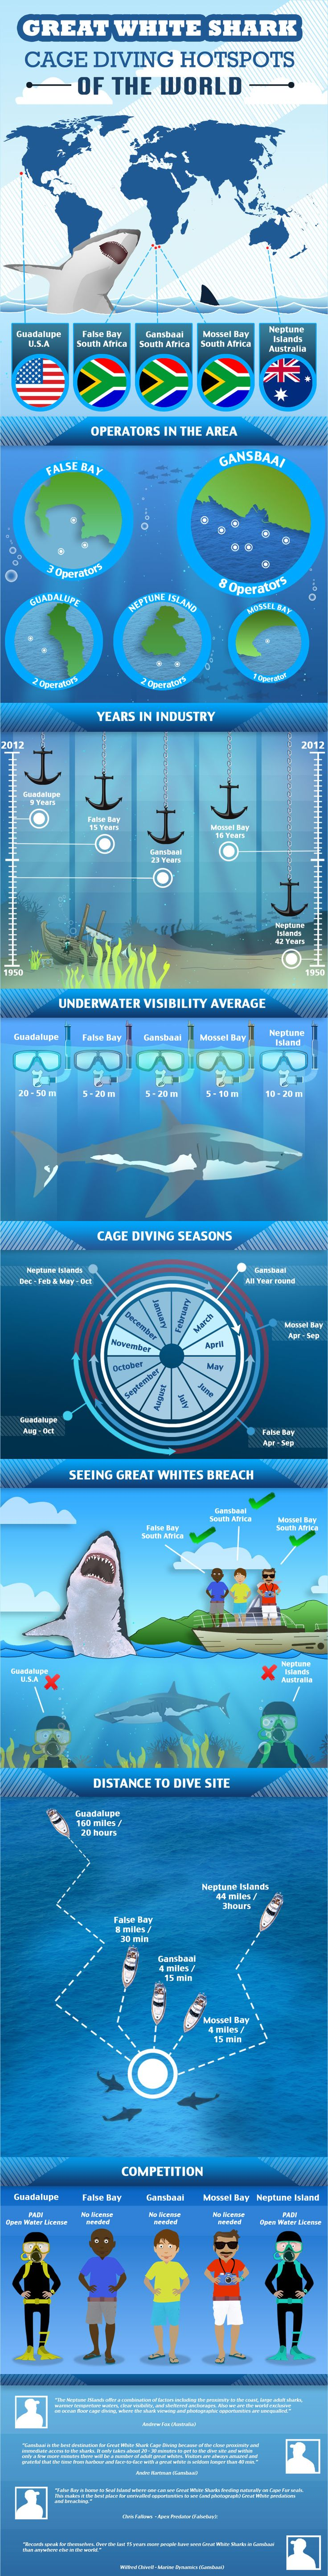 Great White Shark Cage Diving Hotspots of the World Infographic